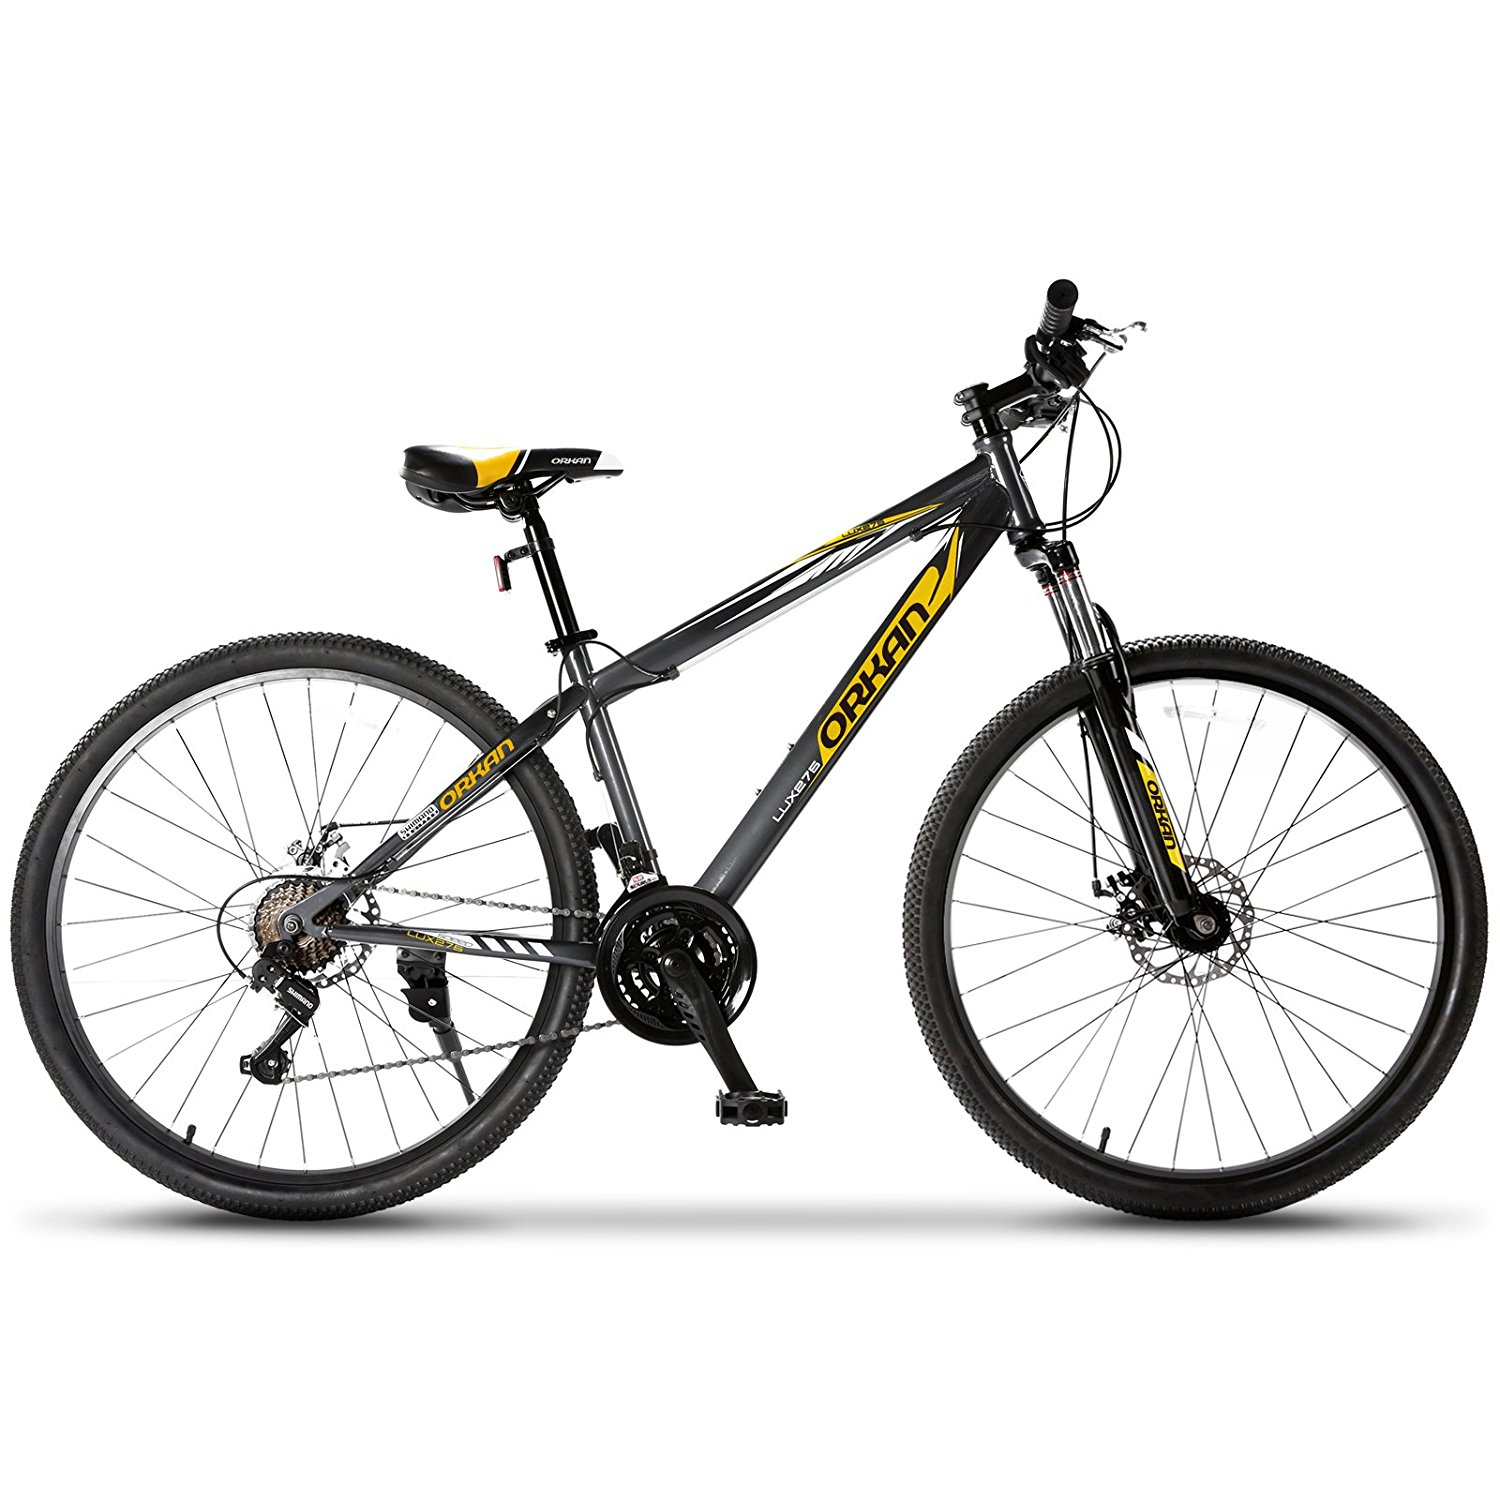 nakamura royal hybrid bike review